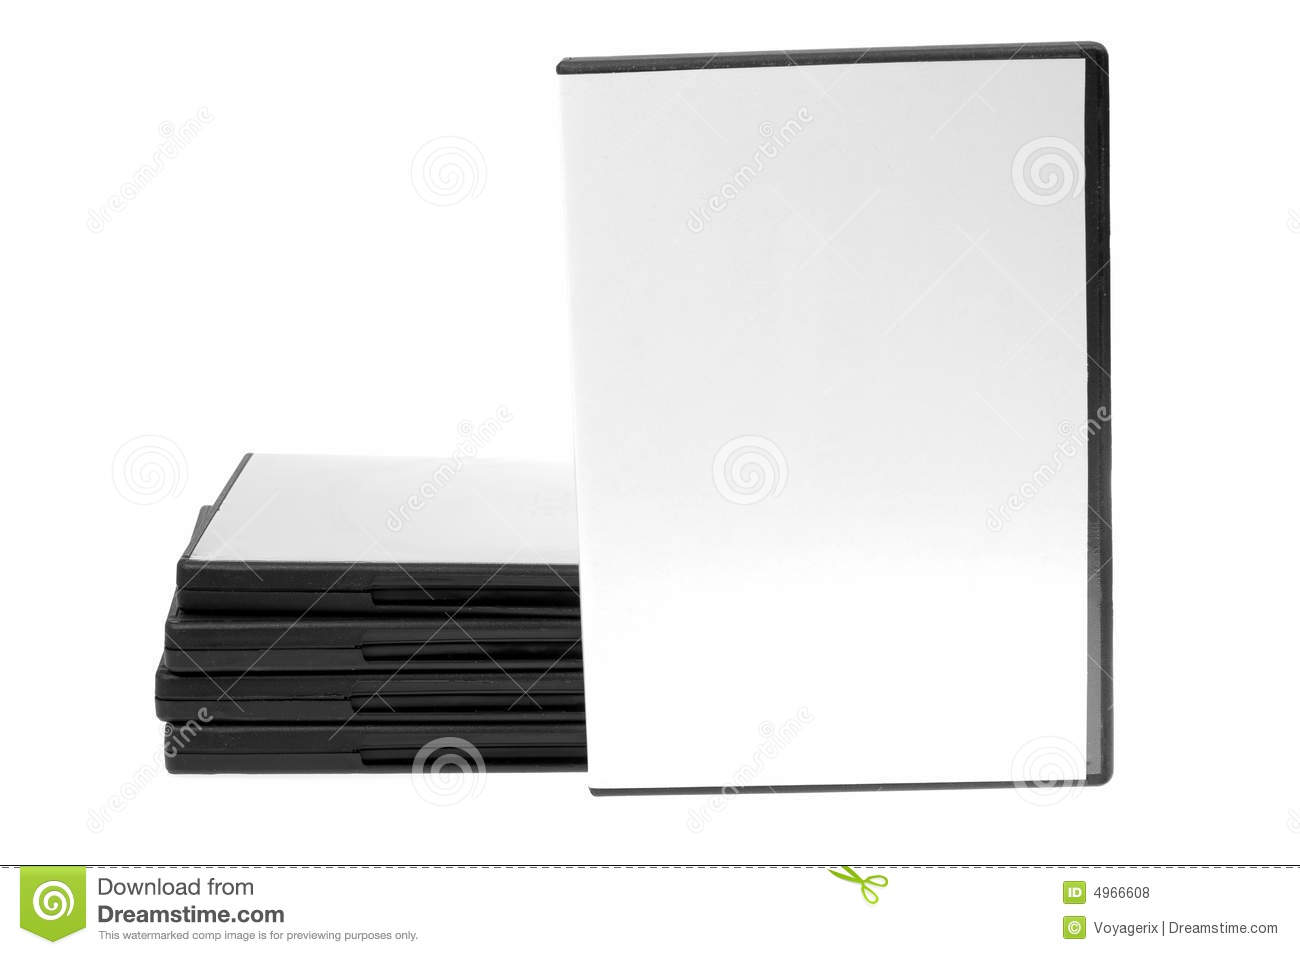 Blank case DVD / CD and disk on white background